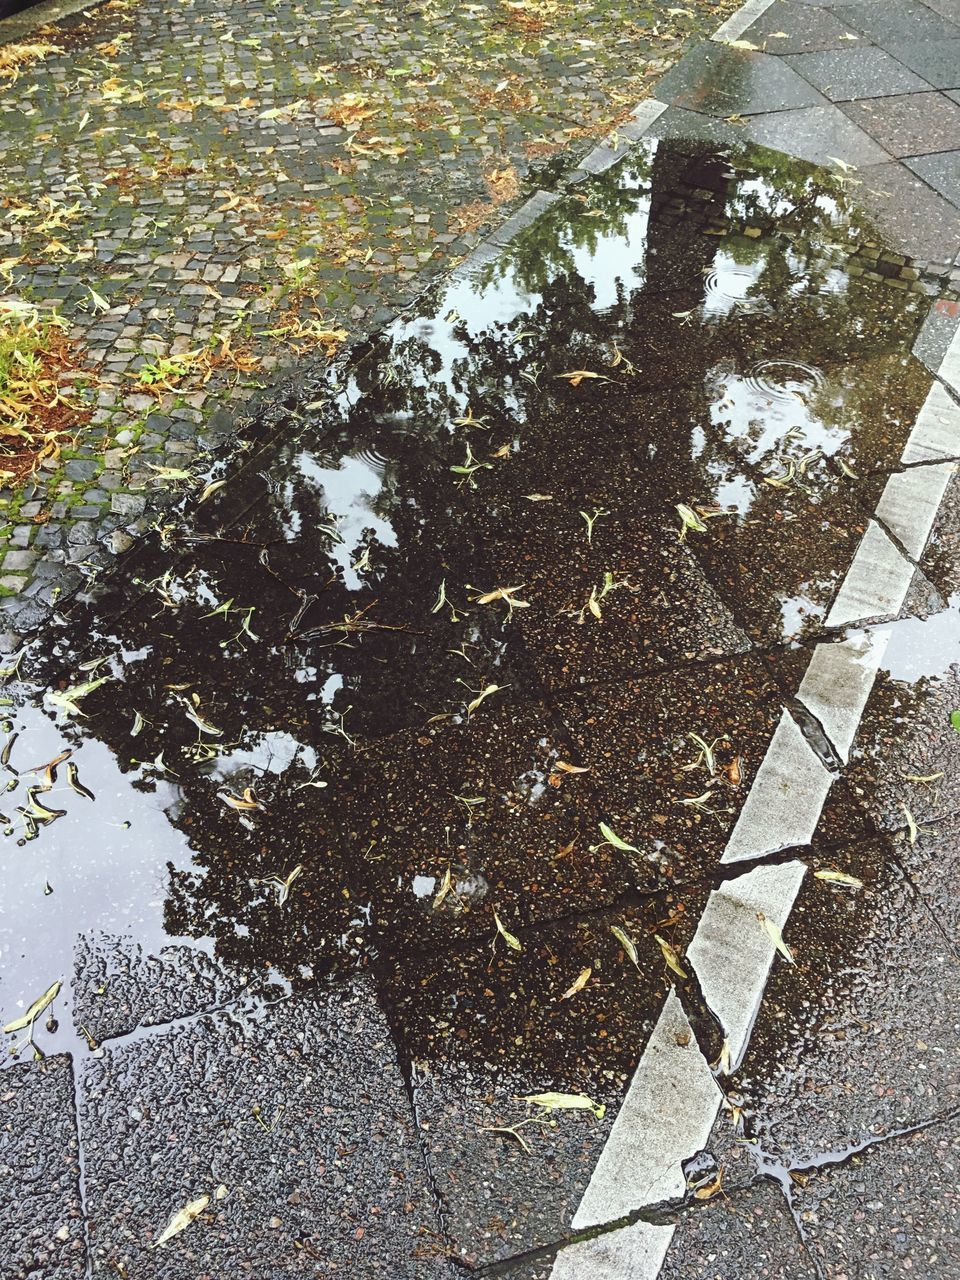 leaf, autumn, high angle view, outdoors, day, street, no people, change, puddle, reflection, road, nature, water, oil spill, close-up